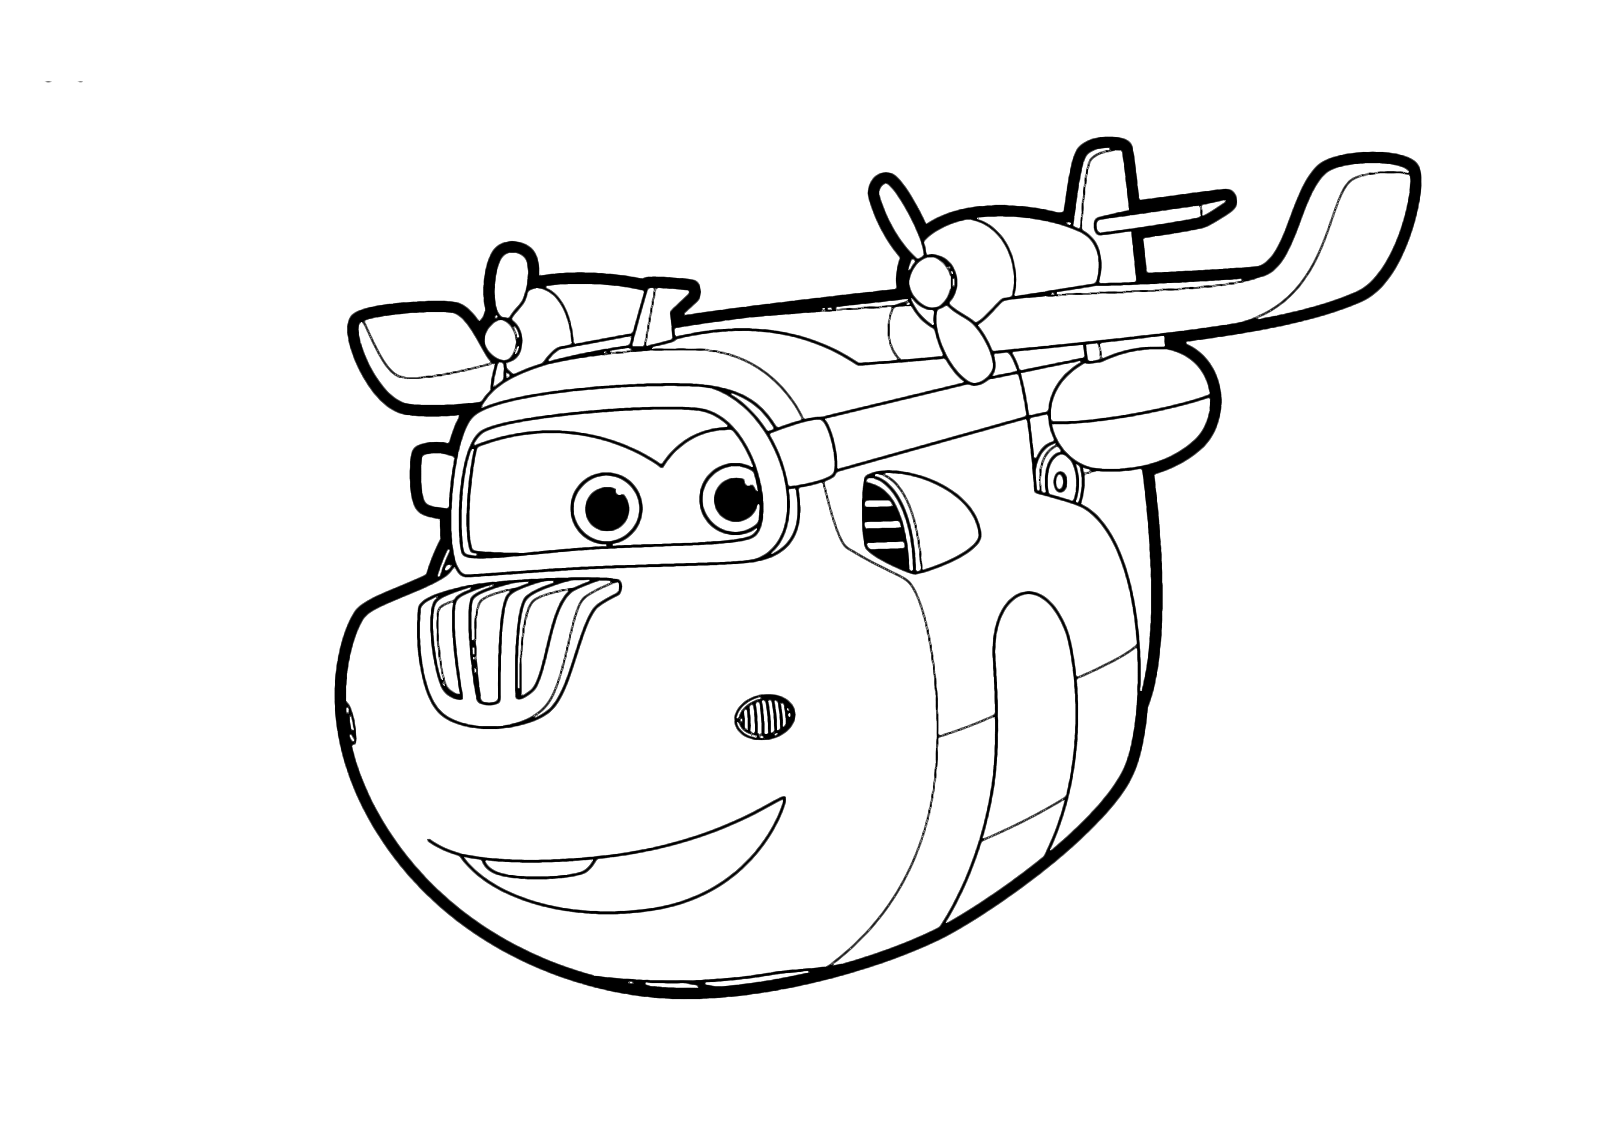 Super wings donnie flies in the sky for Super wings coloring pages